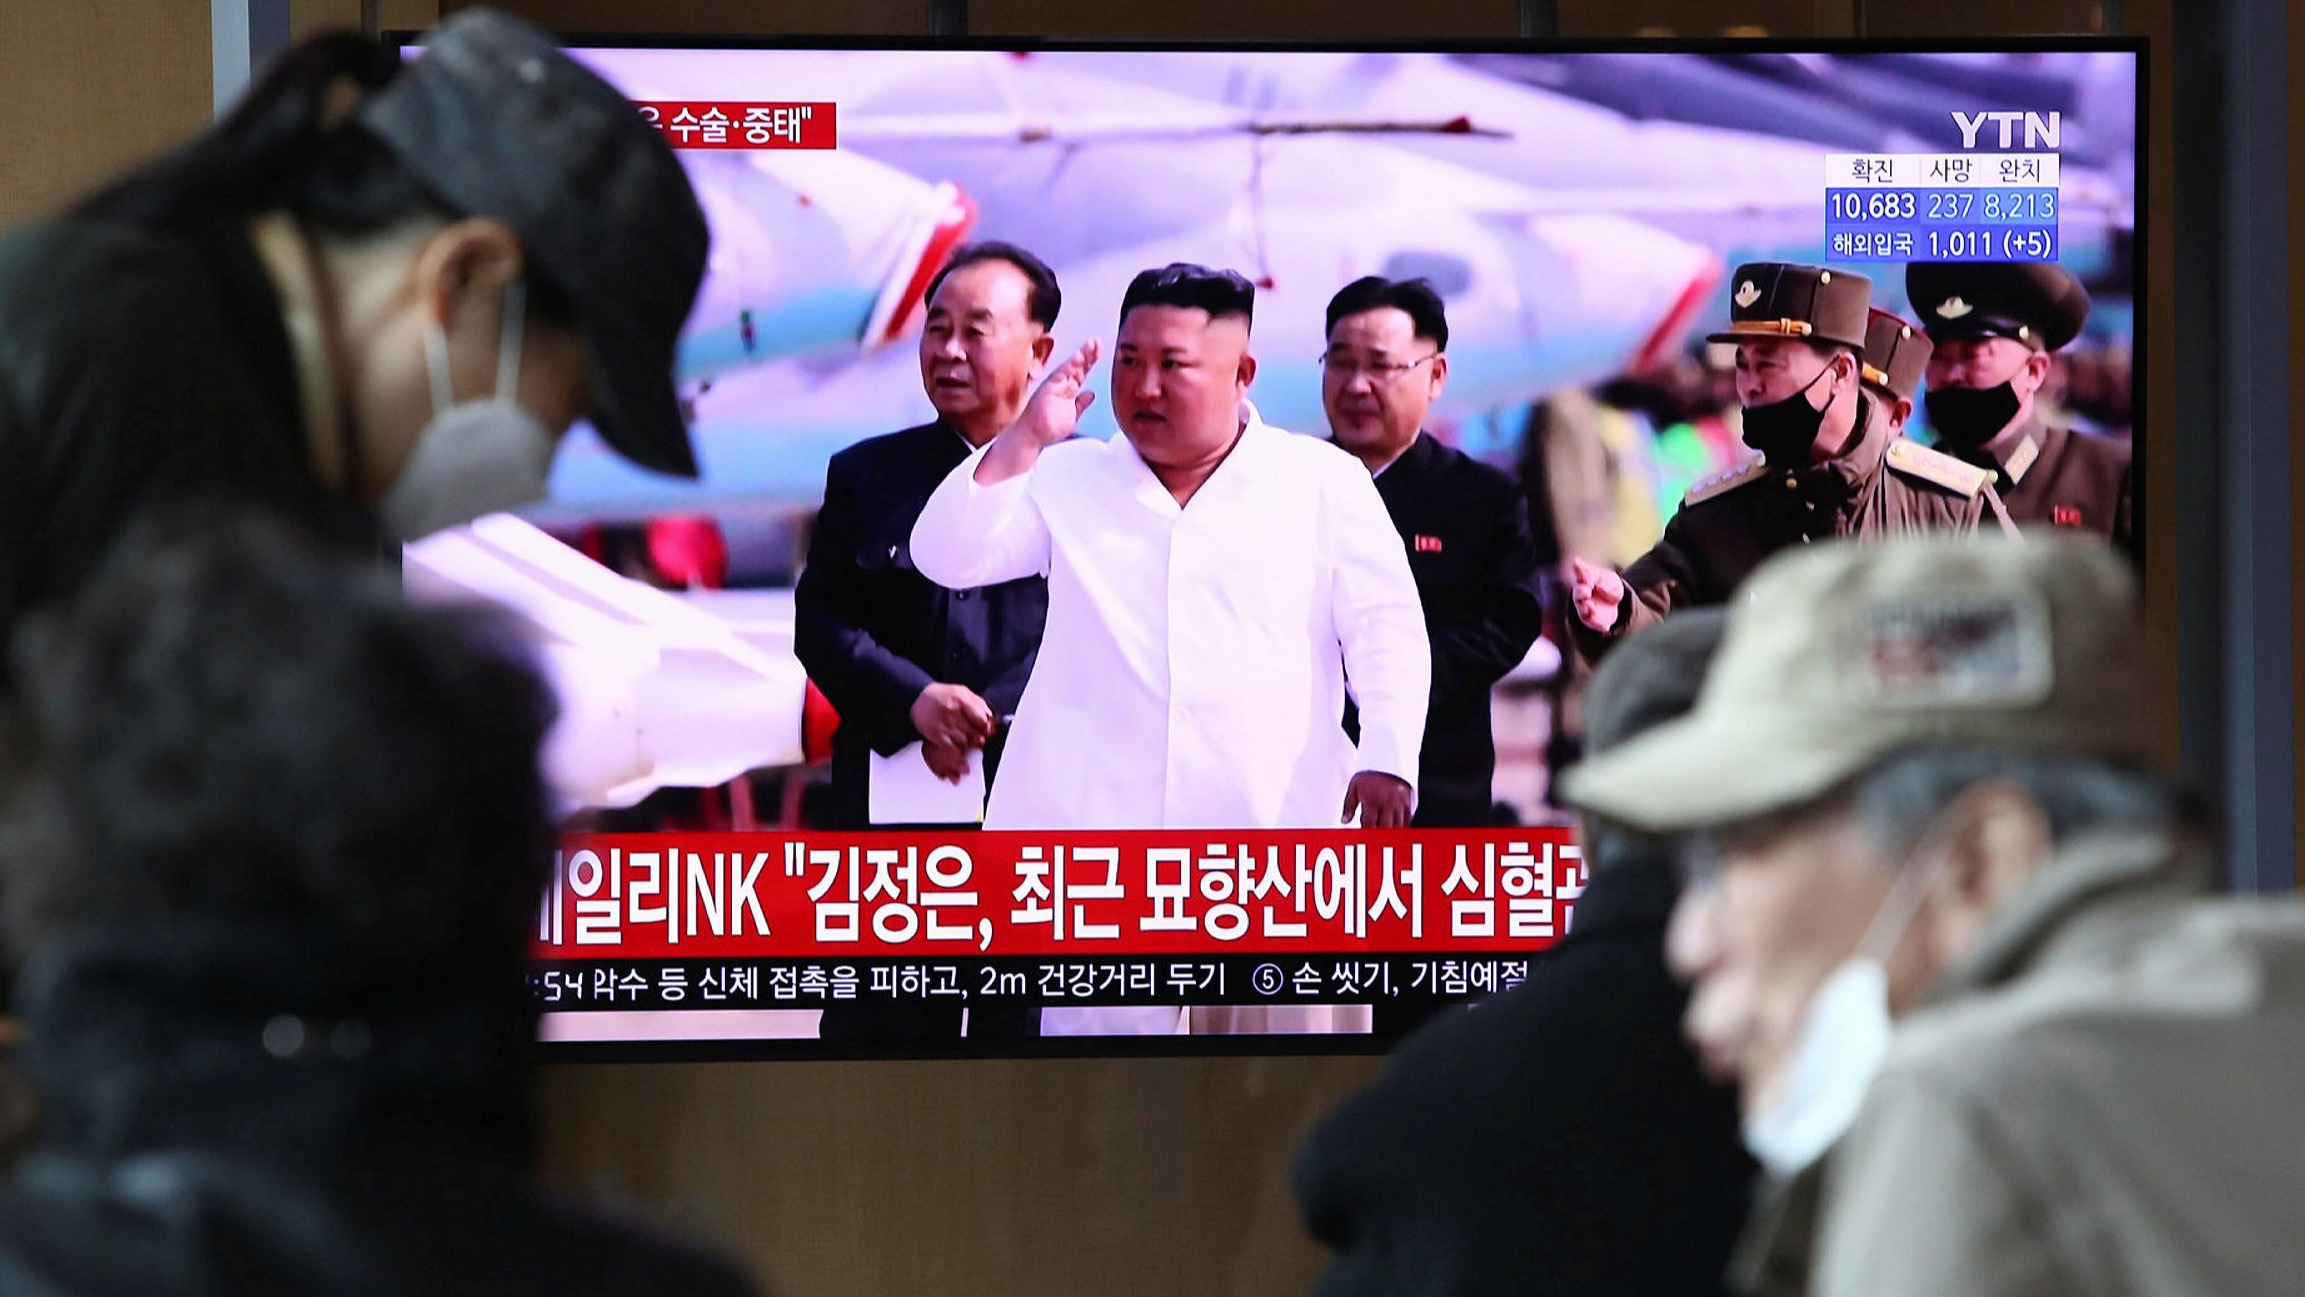 Kim Jong Un S Absence Fuels Speculation About His Health Financial Times